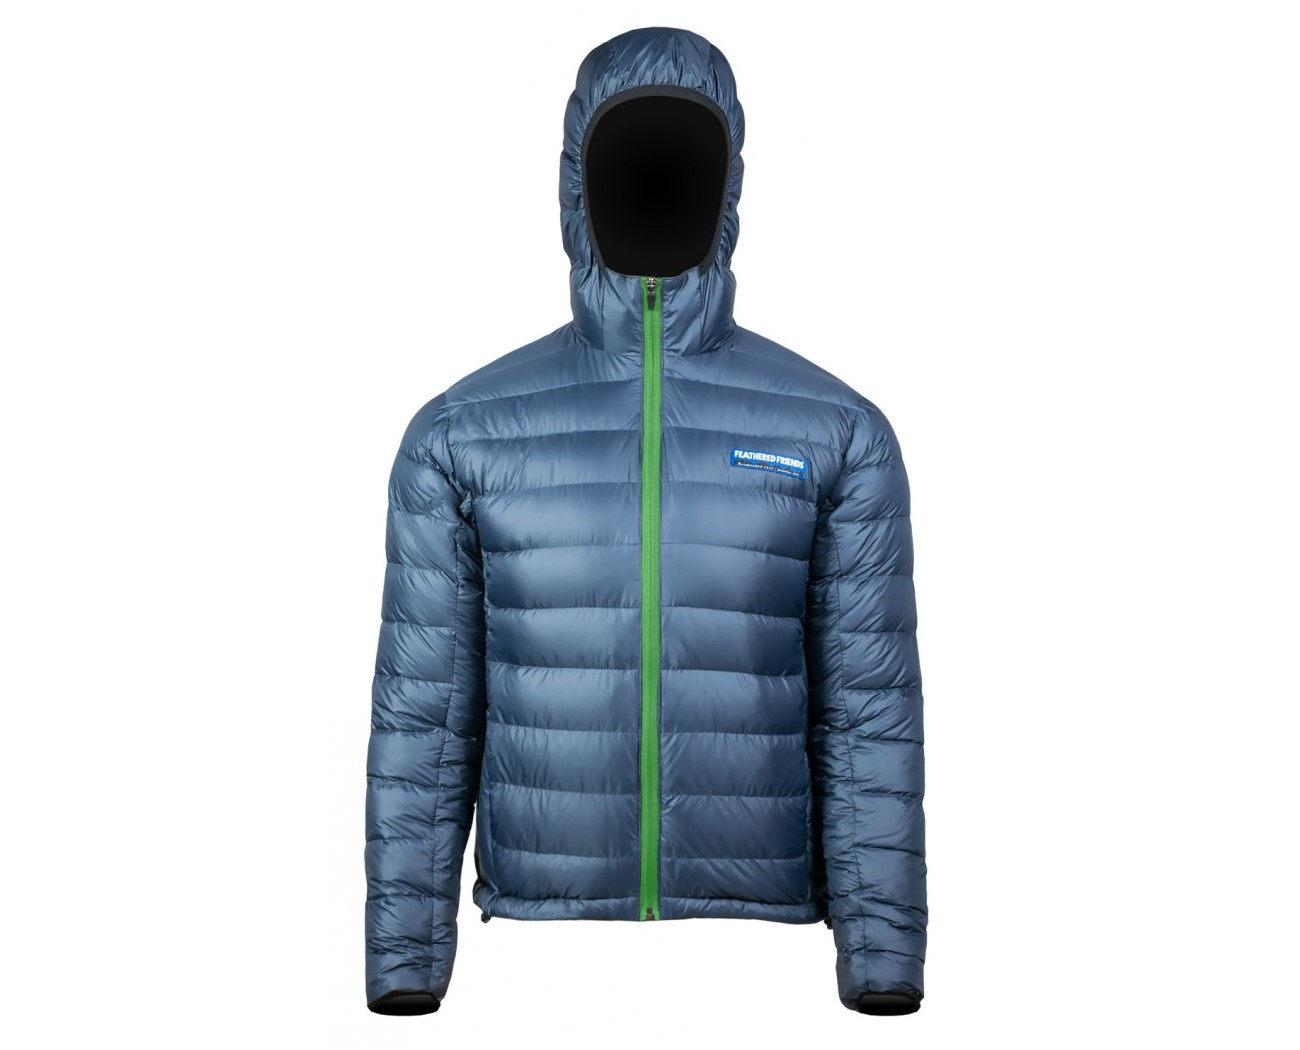 Feathered Friends Eos Jacket is one of the best ultralight down jackets around.